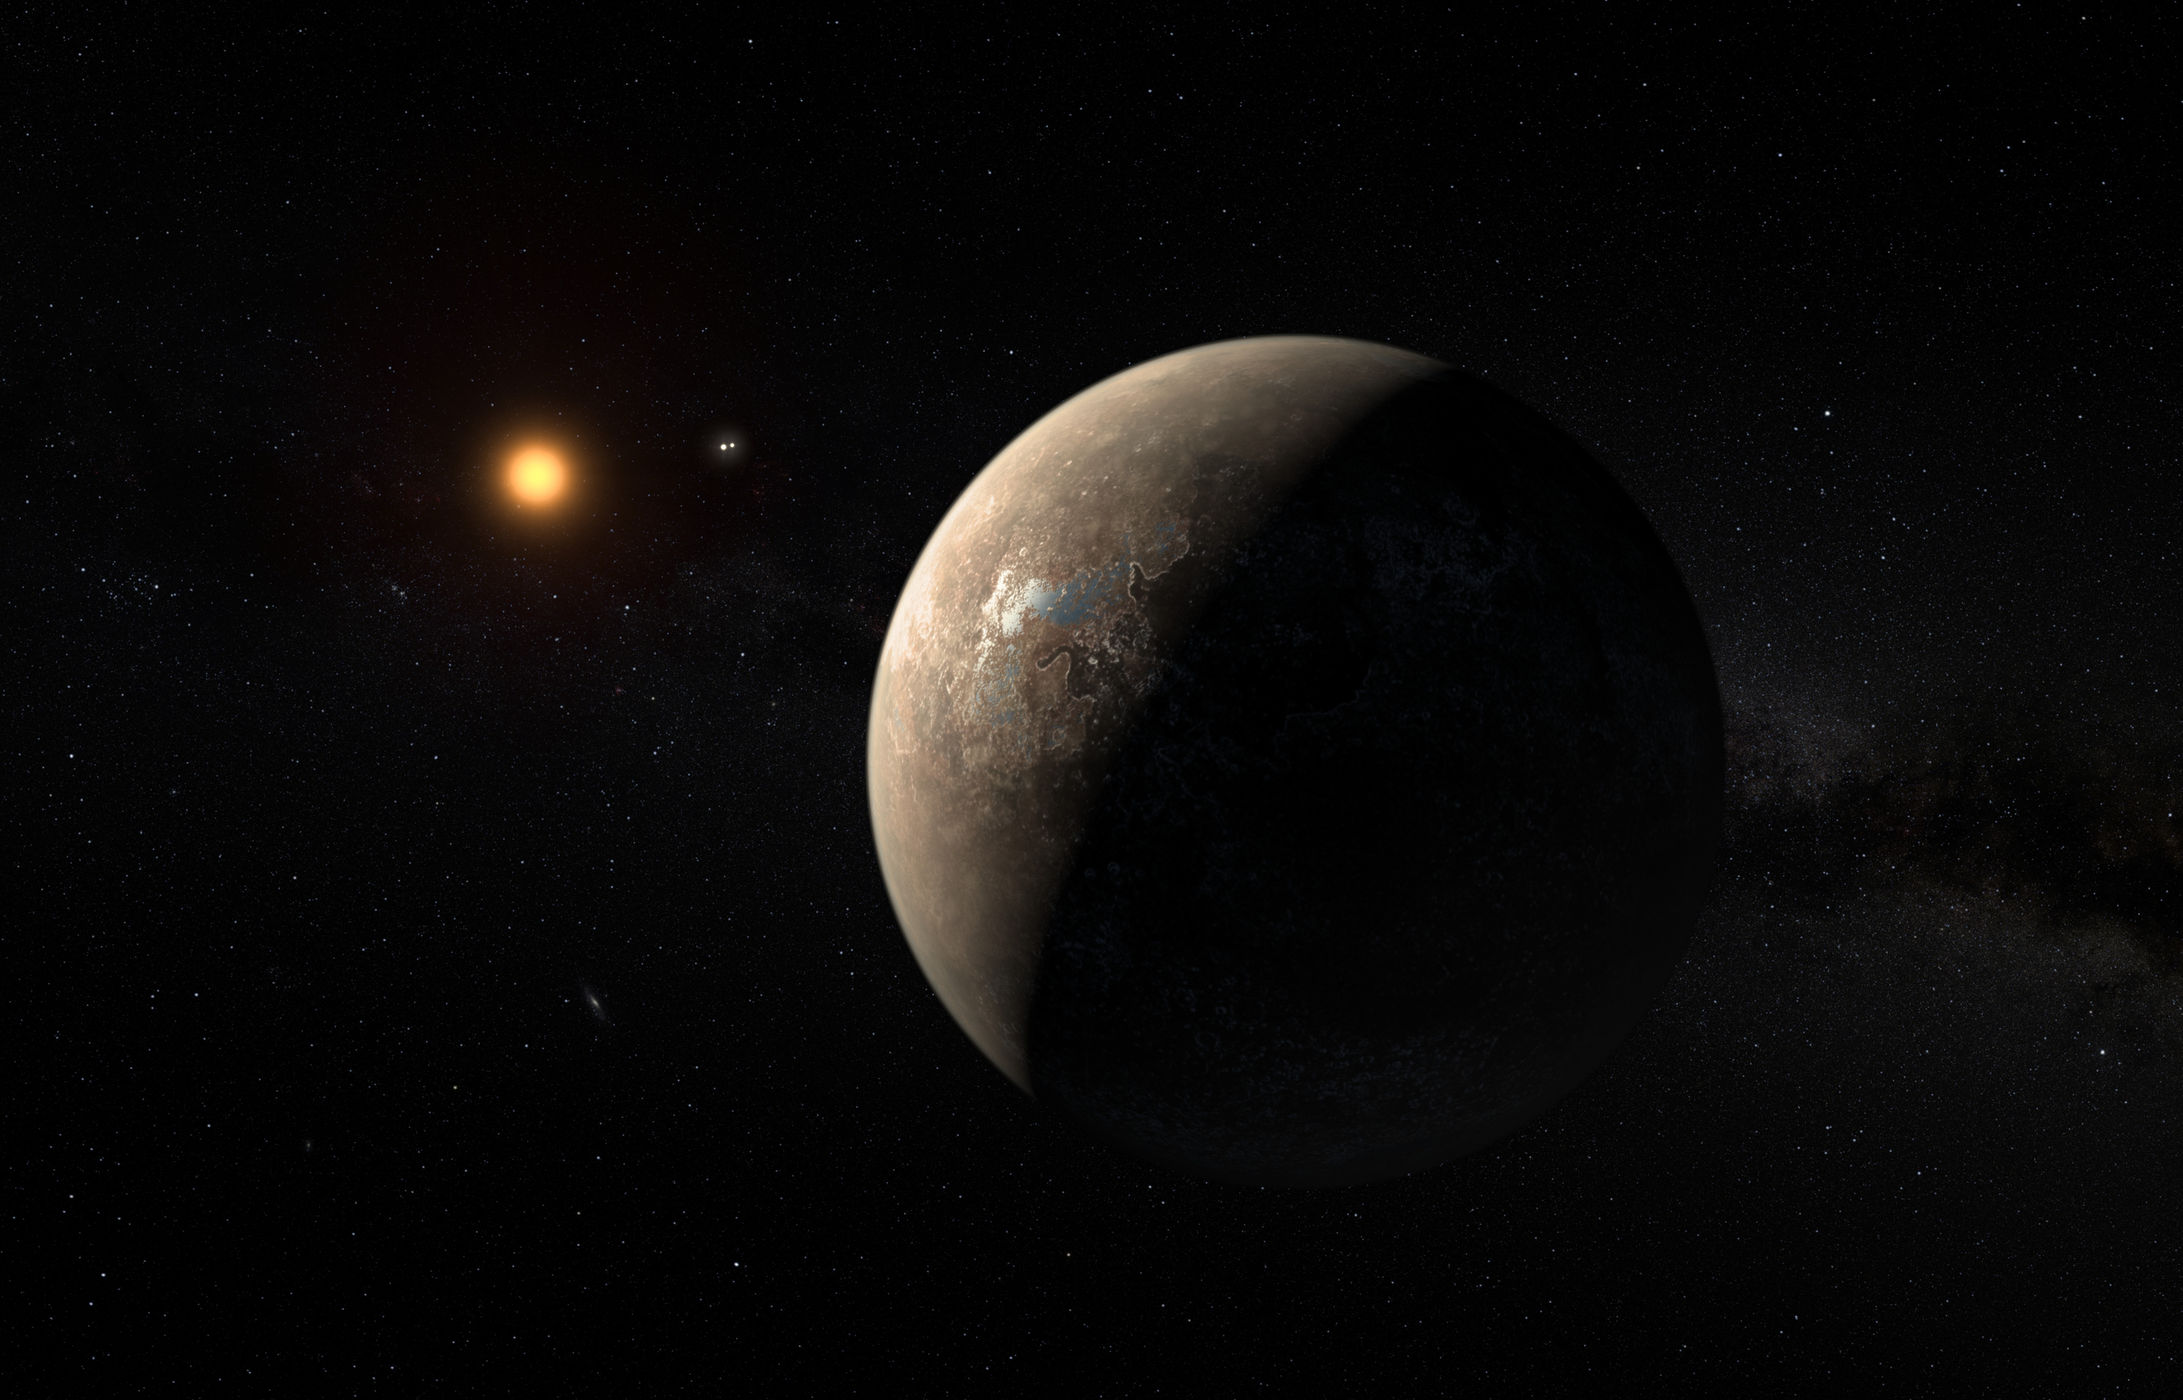 This artist's impression shows the exoplanet Proxima b, which orbits the red dwarf star Proxima Centauri. The double star Alpha Centauri AB appears in the image between the exoplanet and its star. Credit: ESO/M. Kornmesser